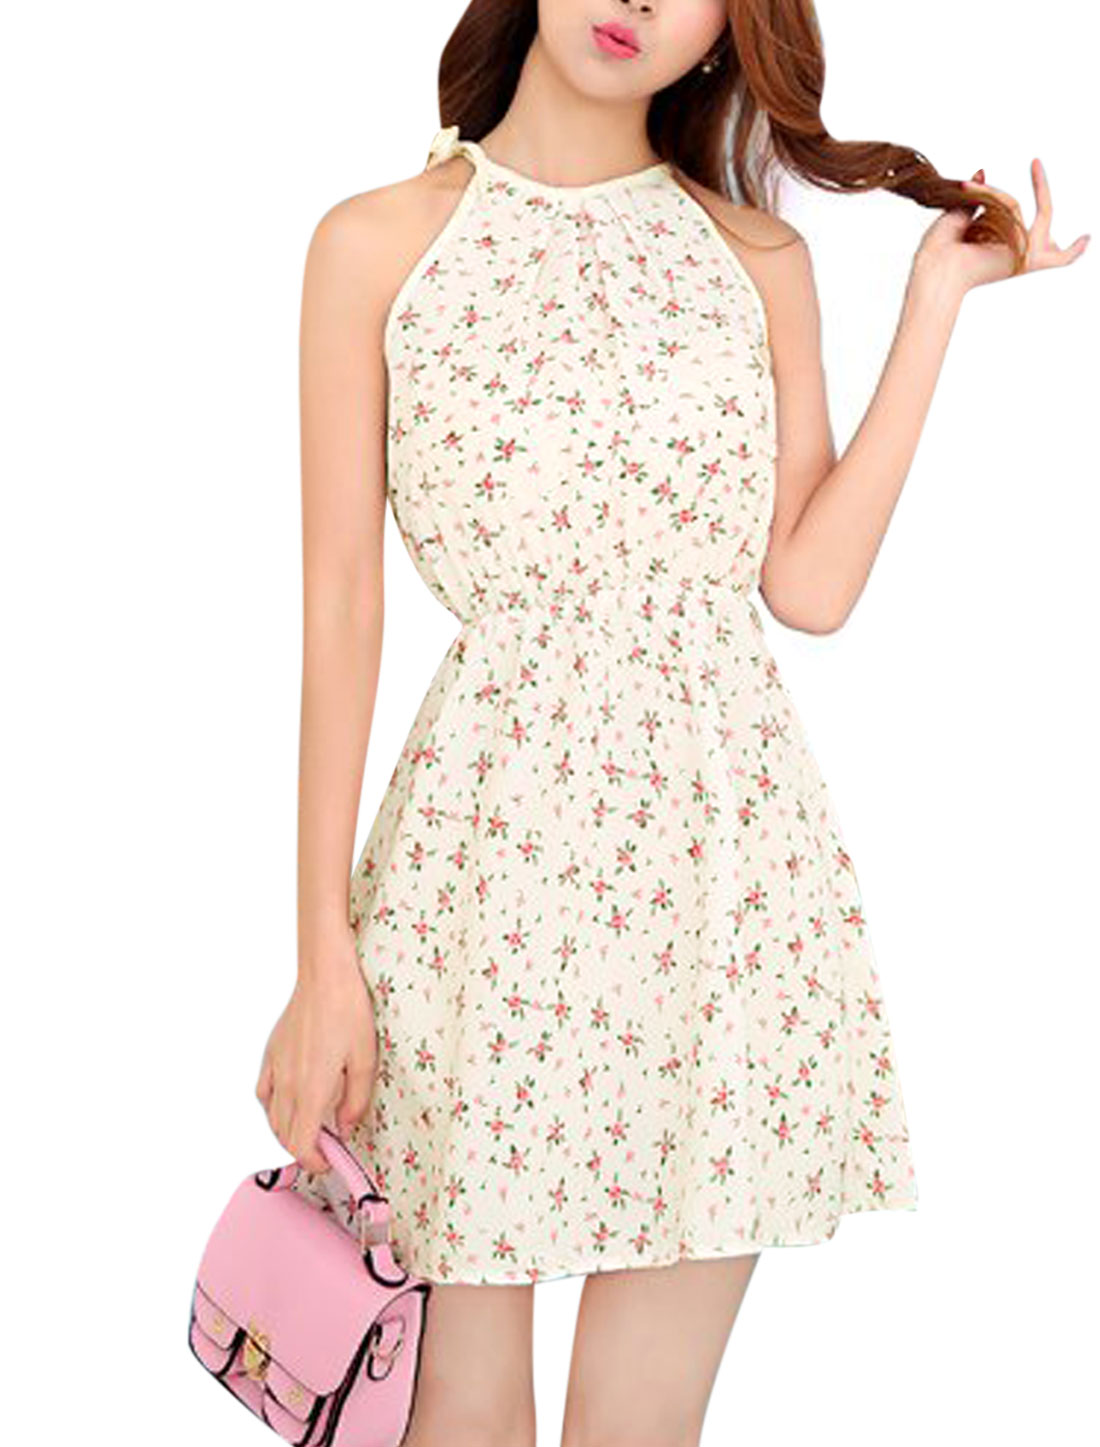 Women Round Neck Sleeveless Floral Prints Self Tie Straps Sun Dress Beige XS